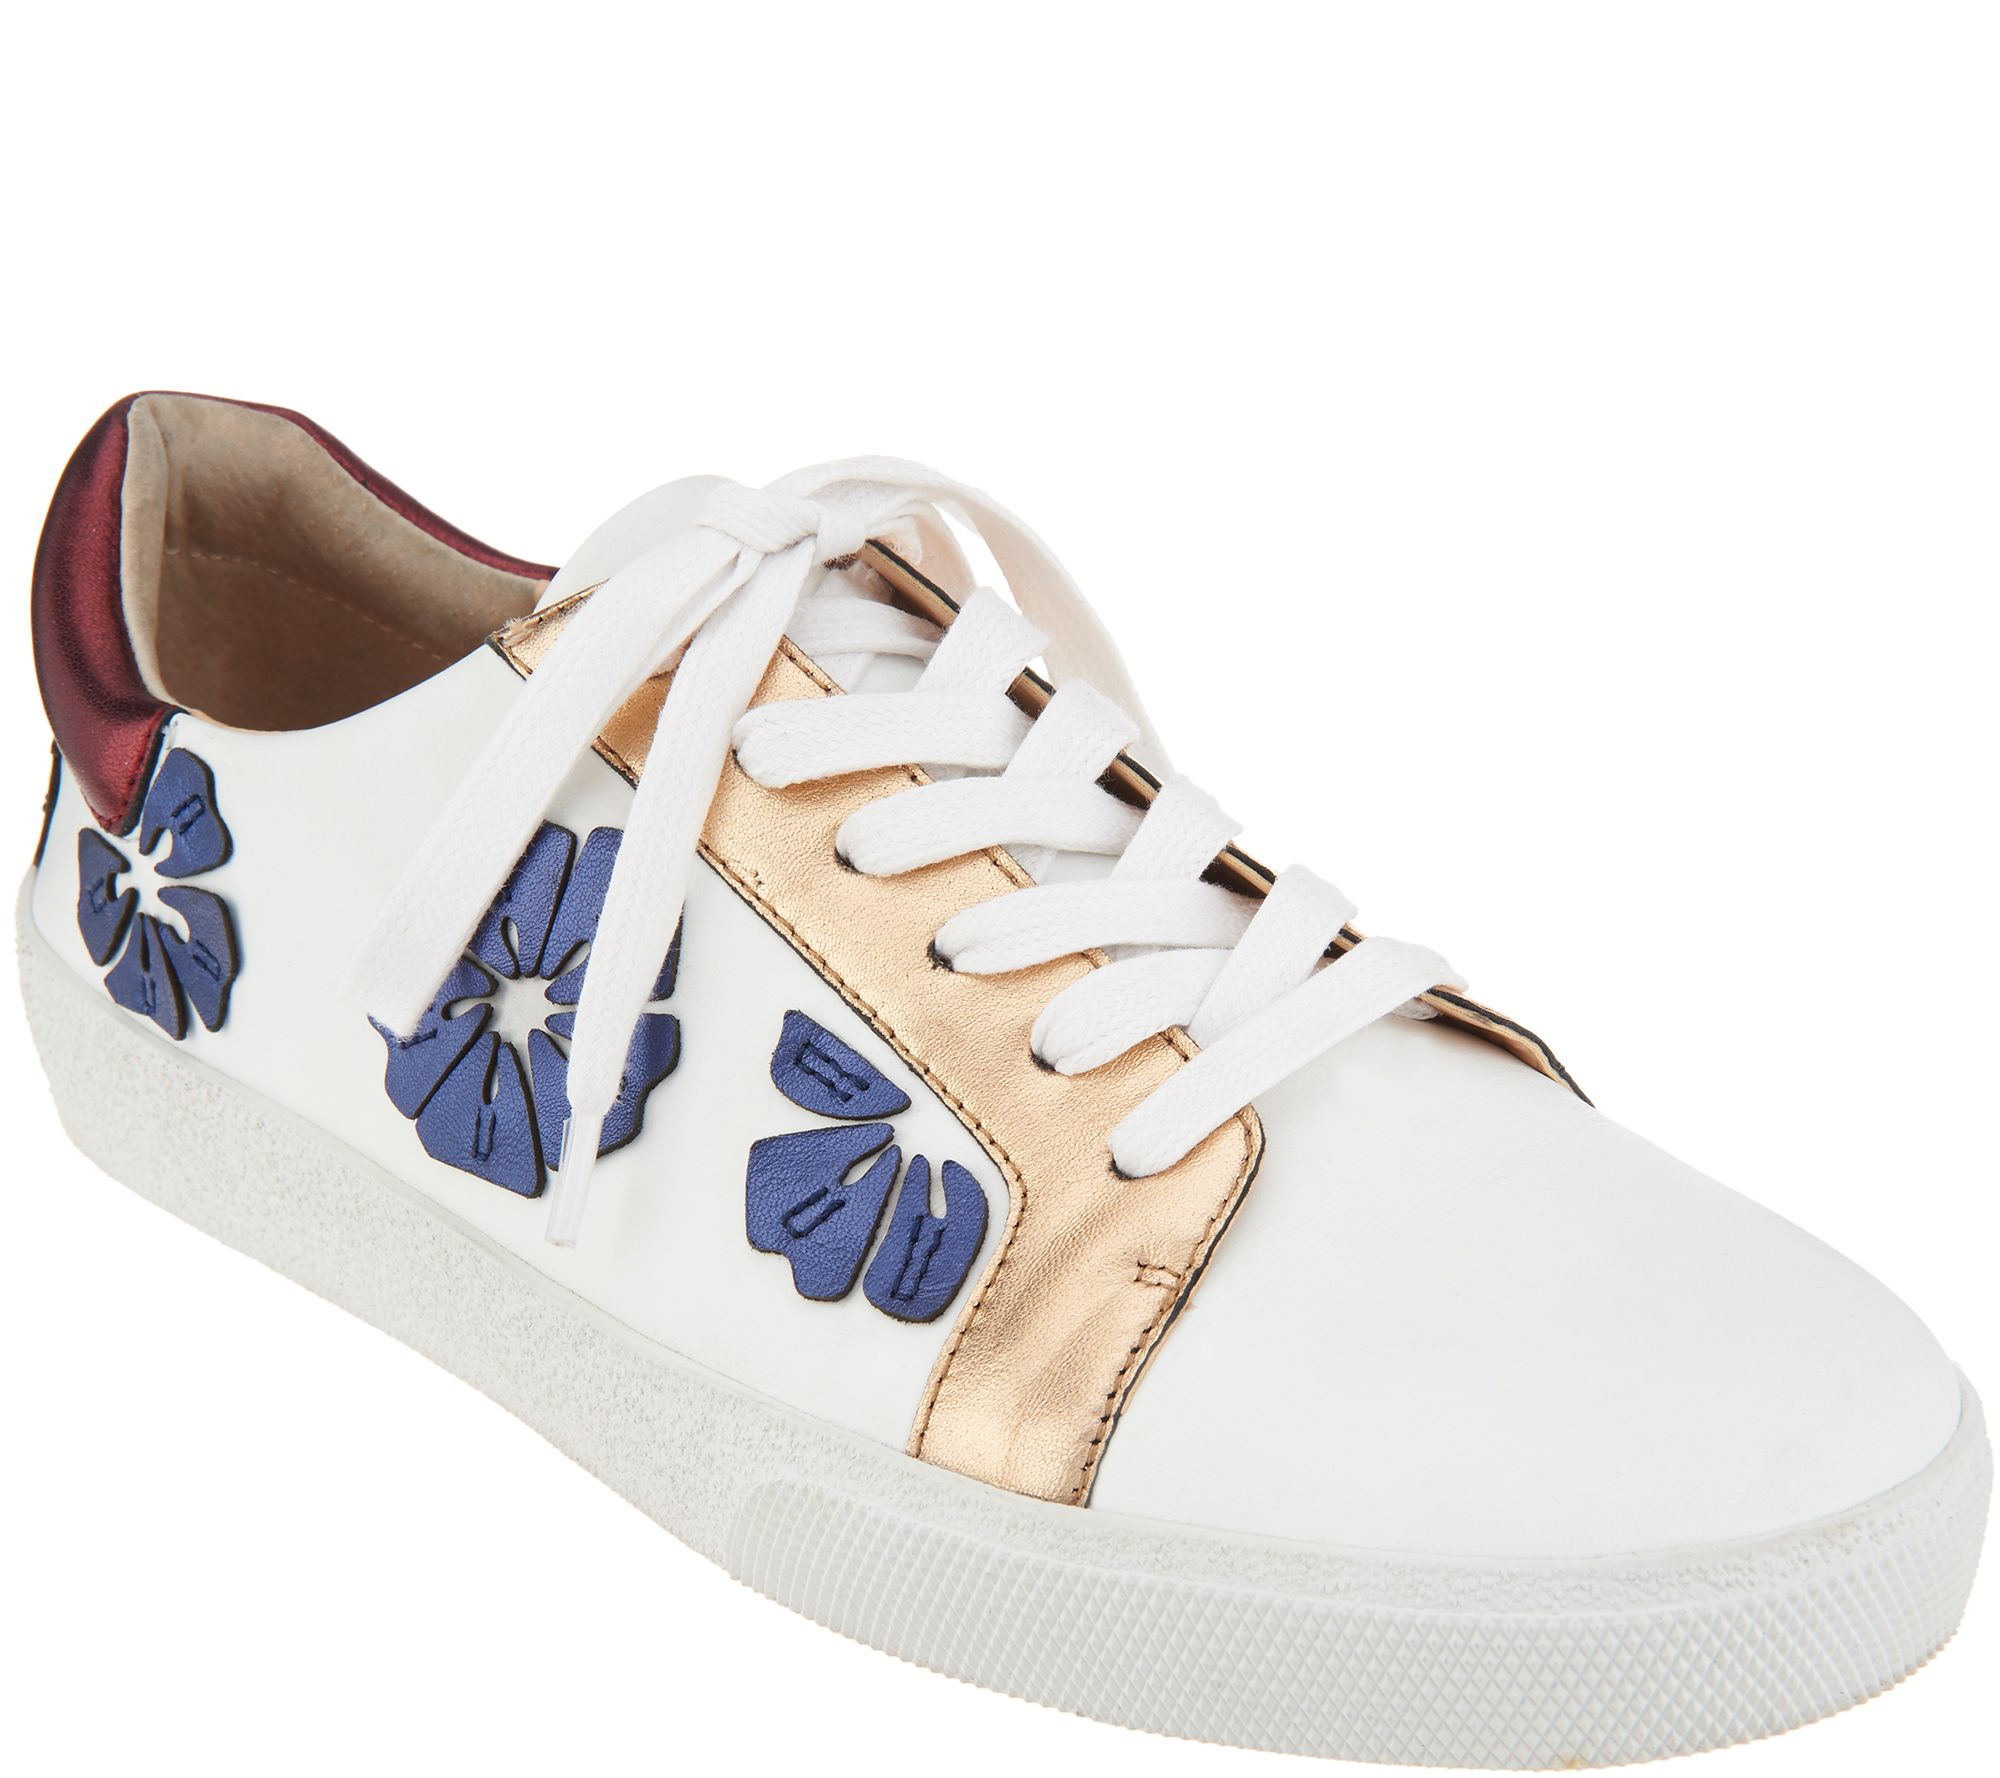 76ca01d0395e Vince Camuto Leather Lace Up Sneakers - Claudinia - Page 1 — QVC.com